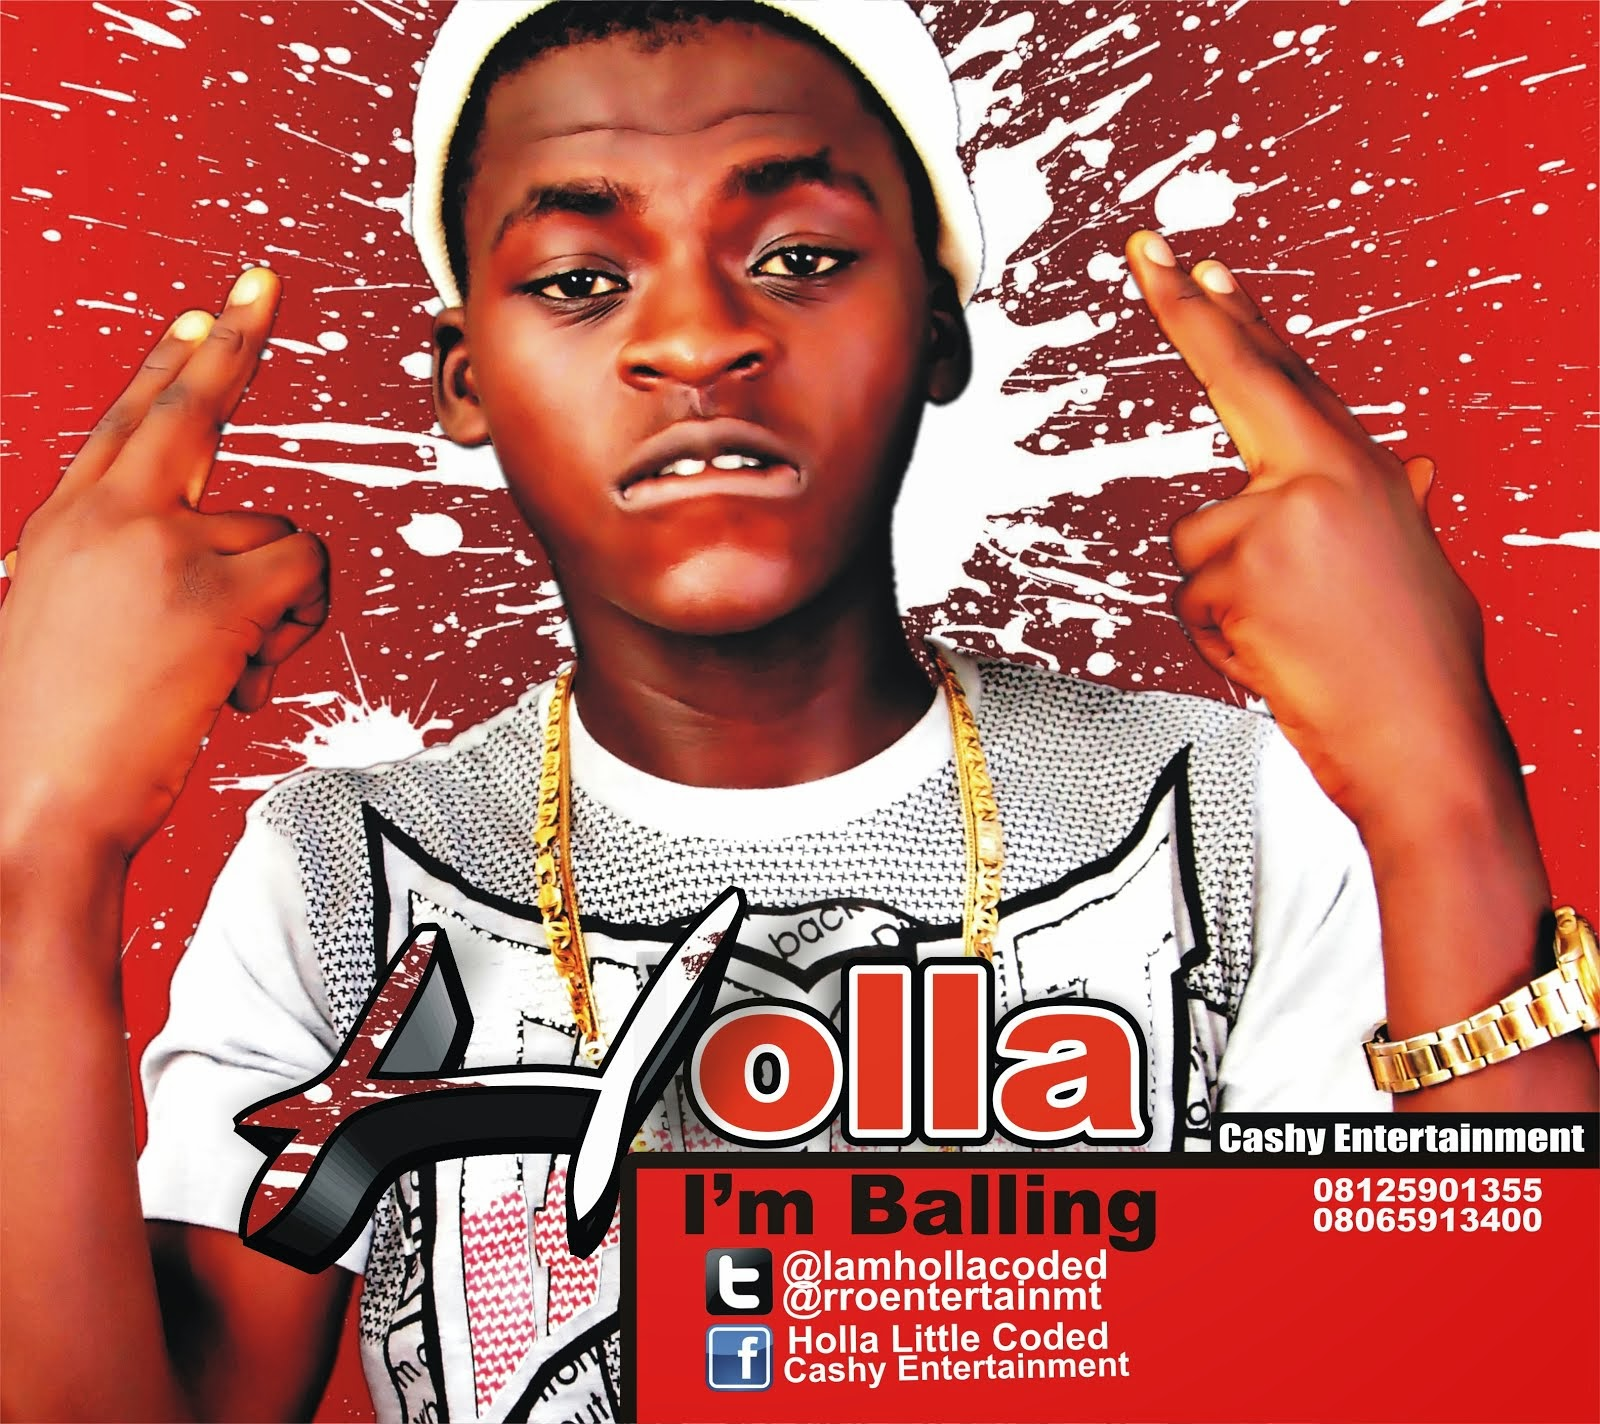 HOLLA - I'M BALLING + FEELING THE BOY - @rroentertainmt, @iamhollacoded